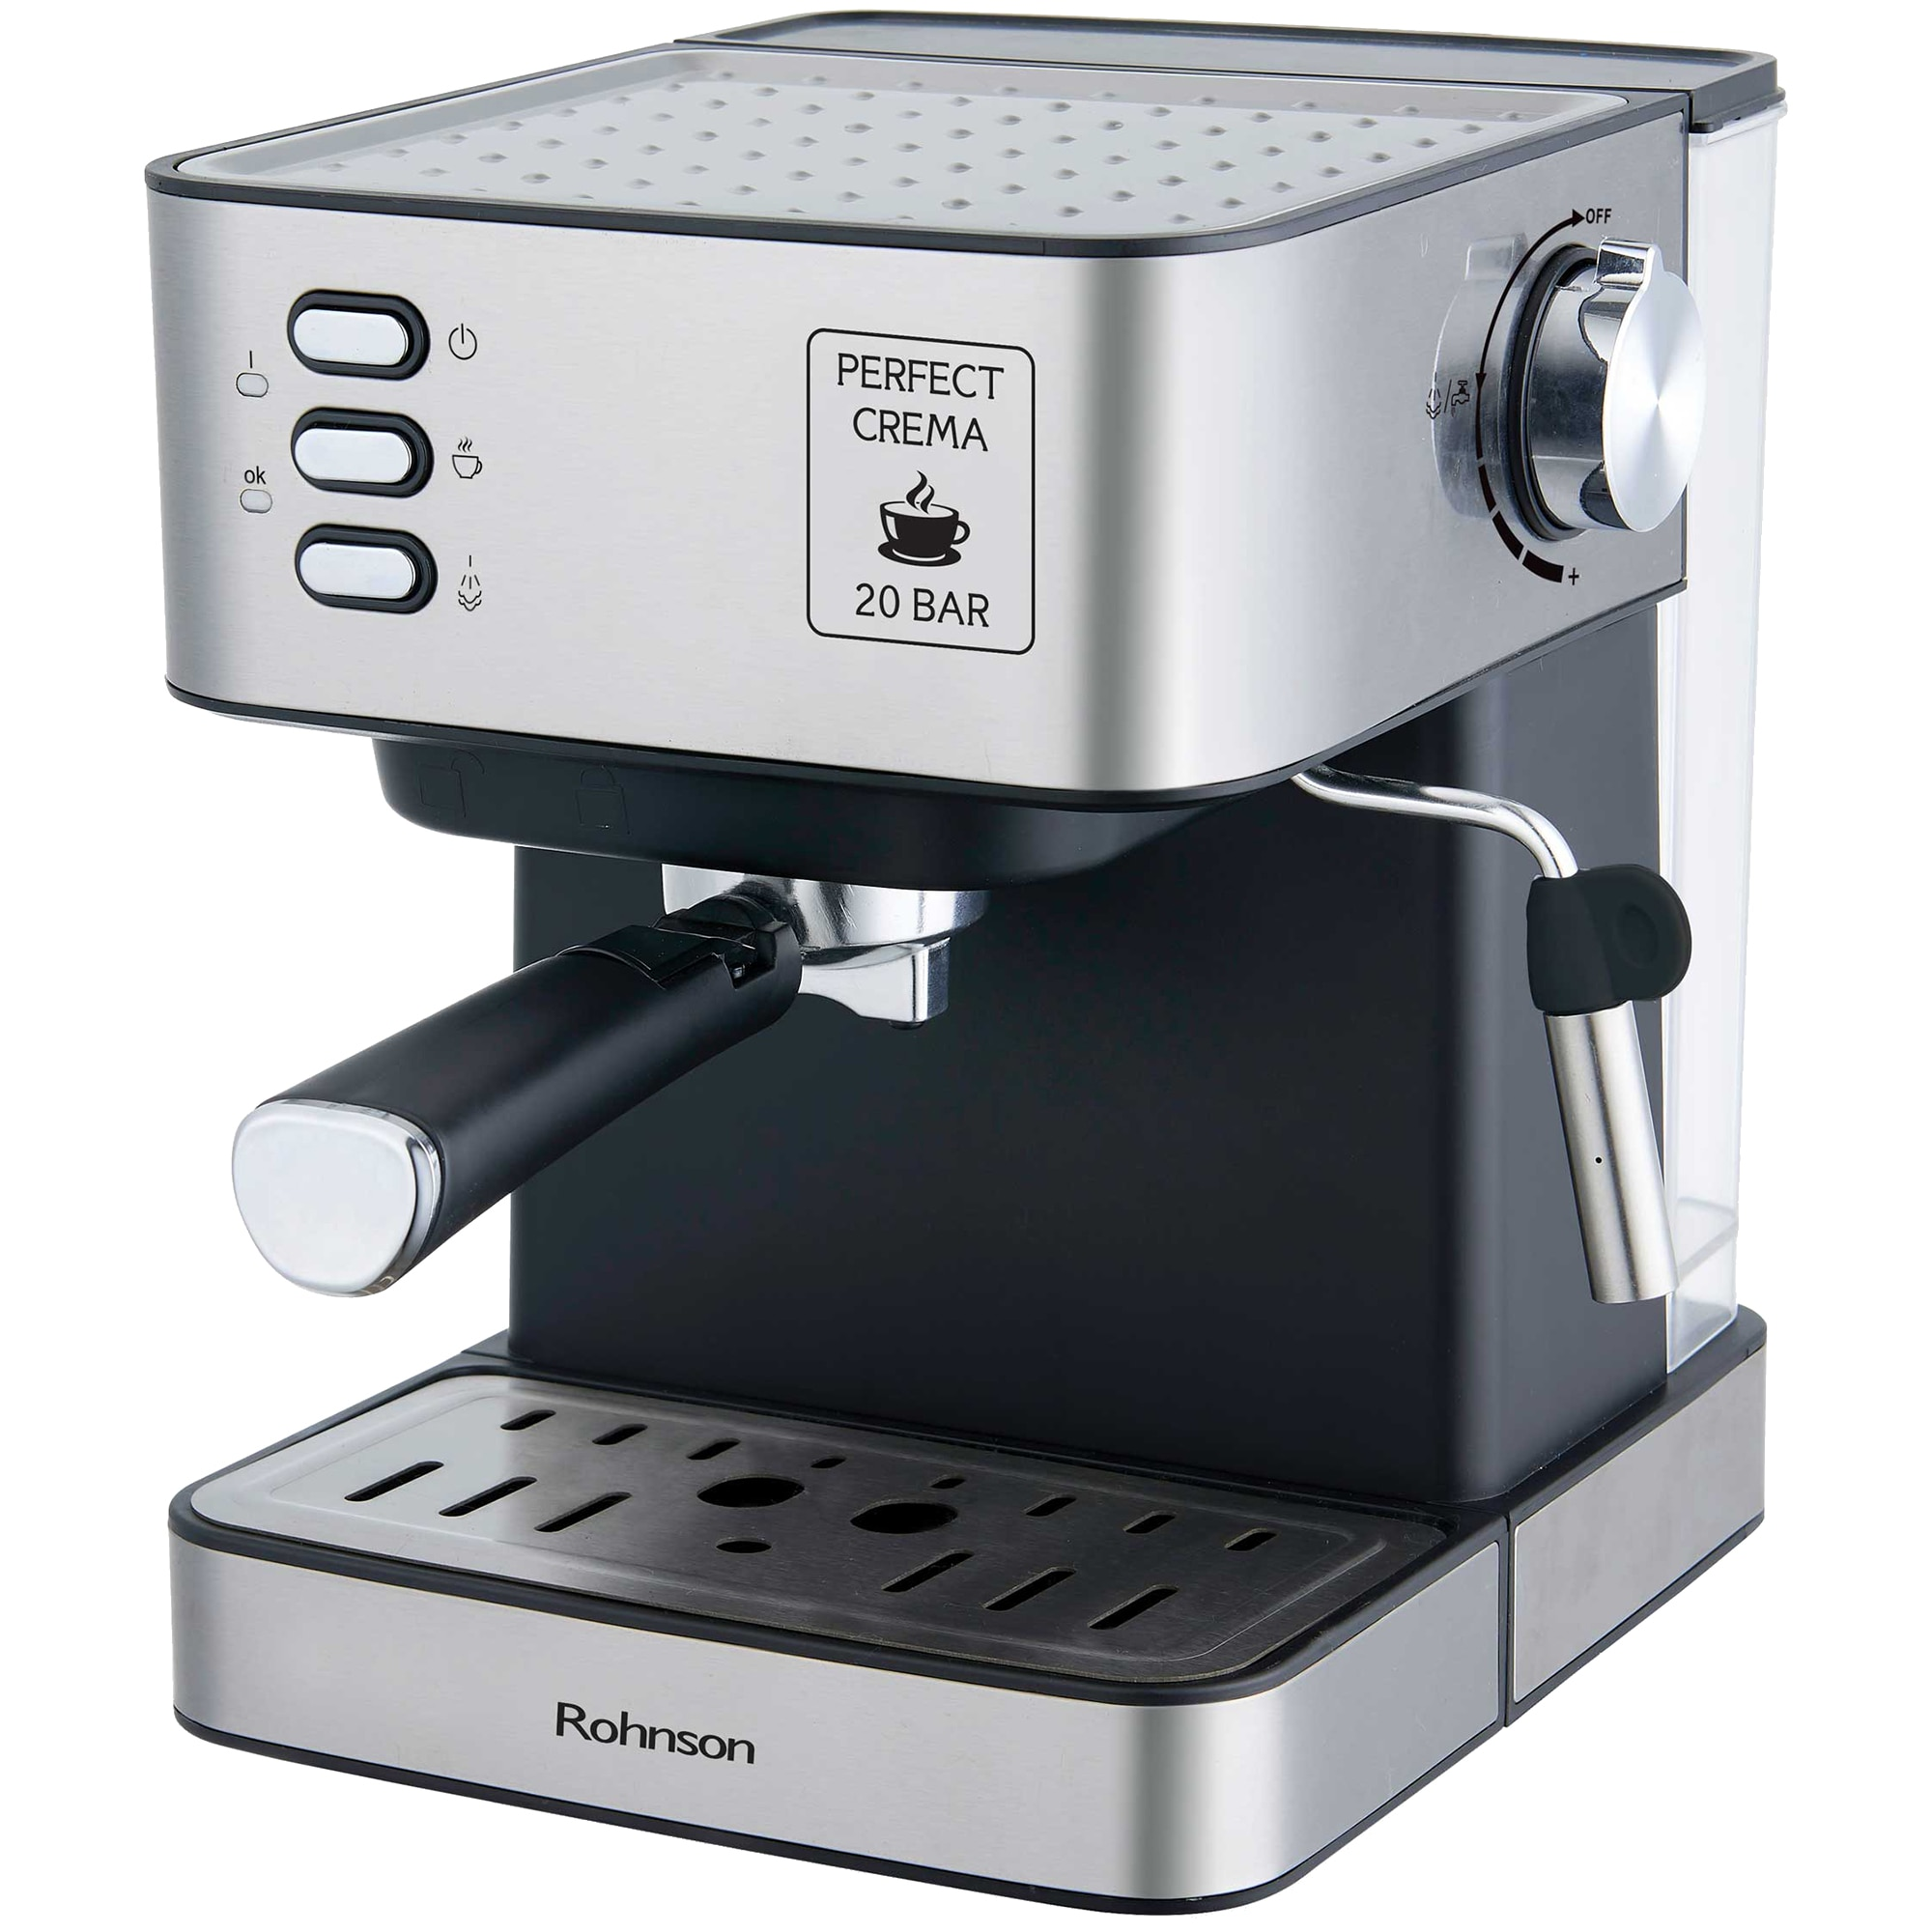 Fotografie Espressor manual Rohnson R982, 850W, 20 bar, Inox